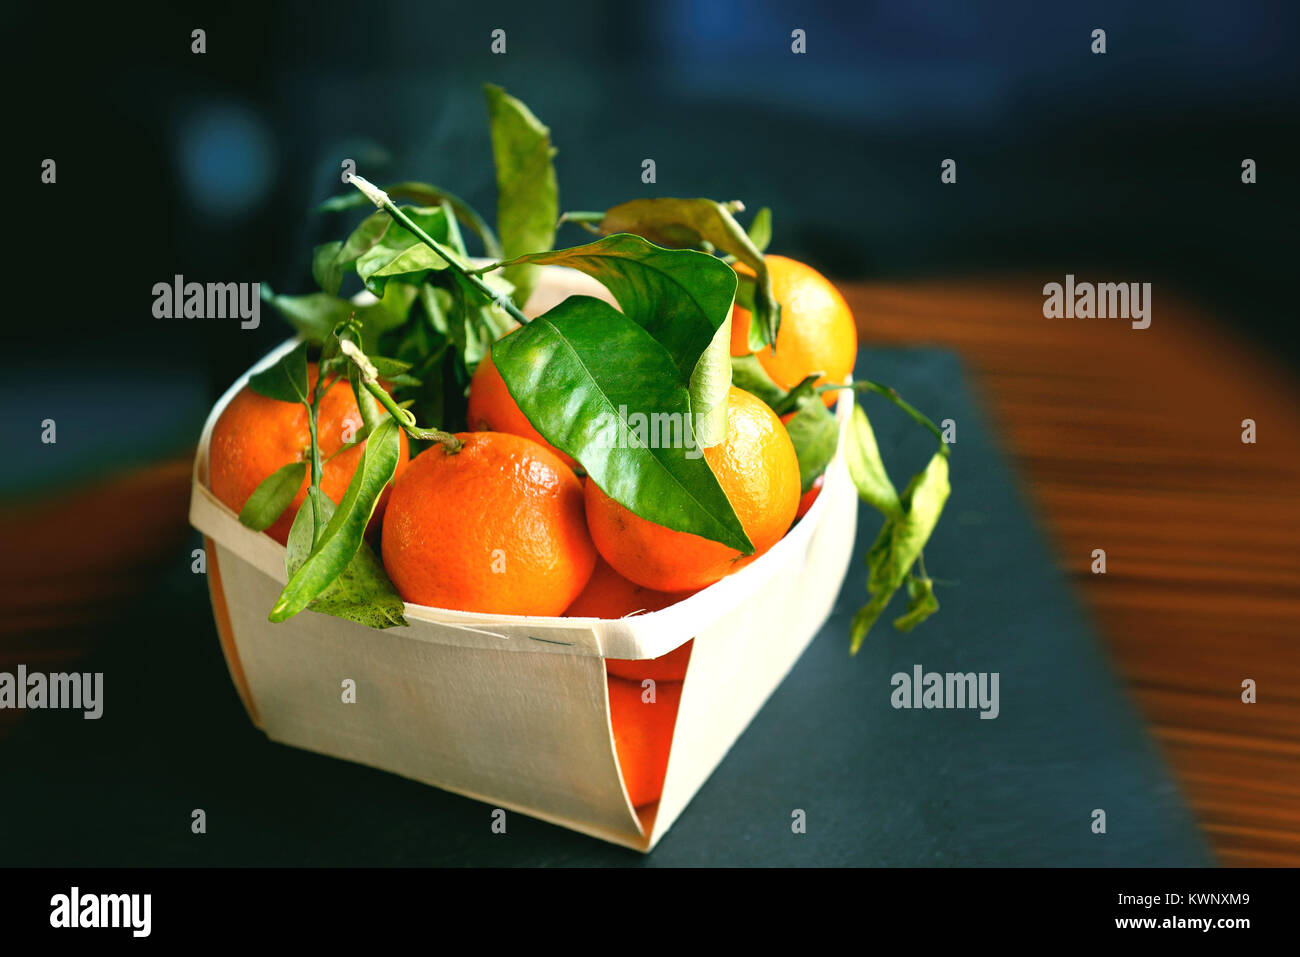 Tangerines  or oranges, mandarins, clementines, citrus fruits with lgreen eaves in basket over rustic wooden background. - Stock Image